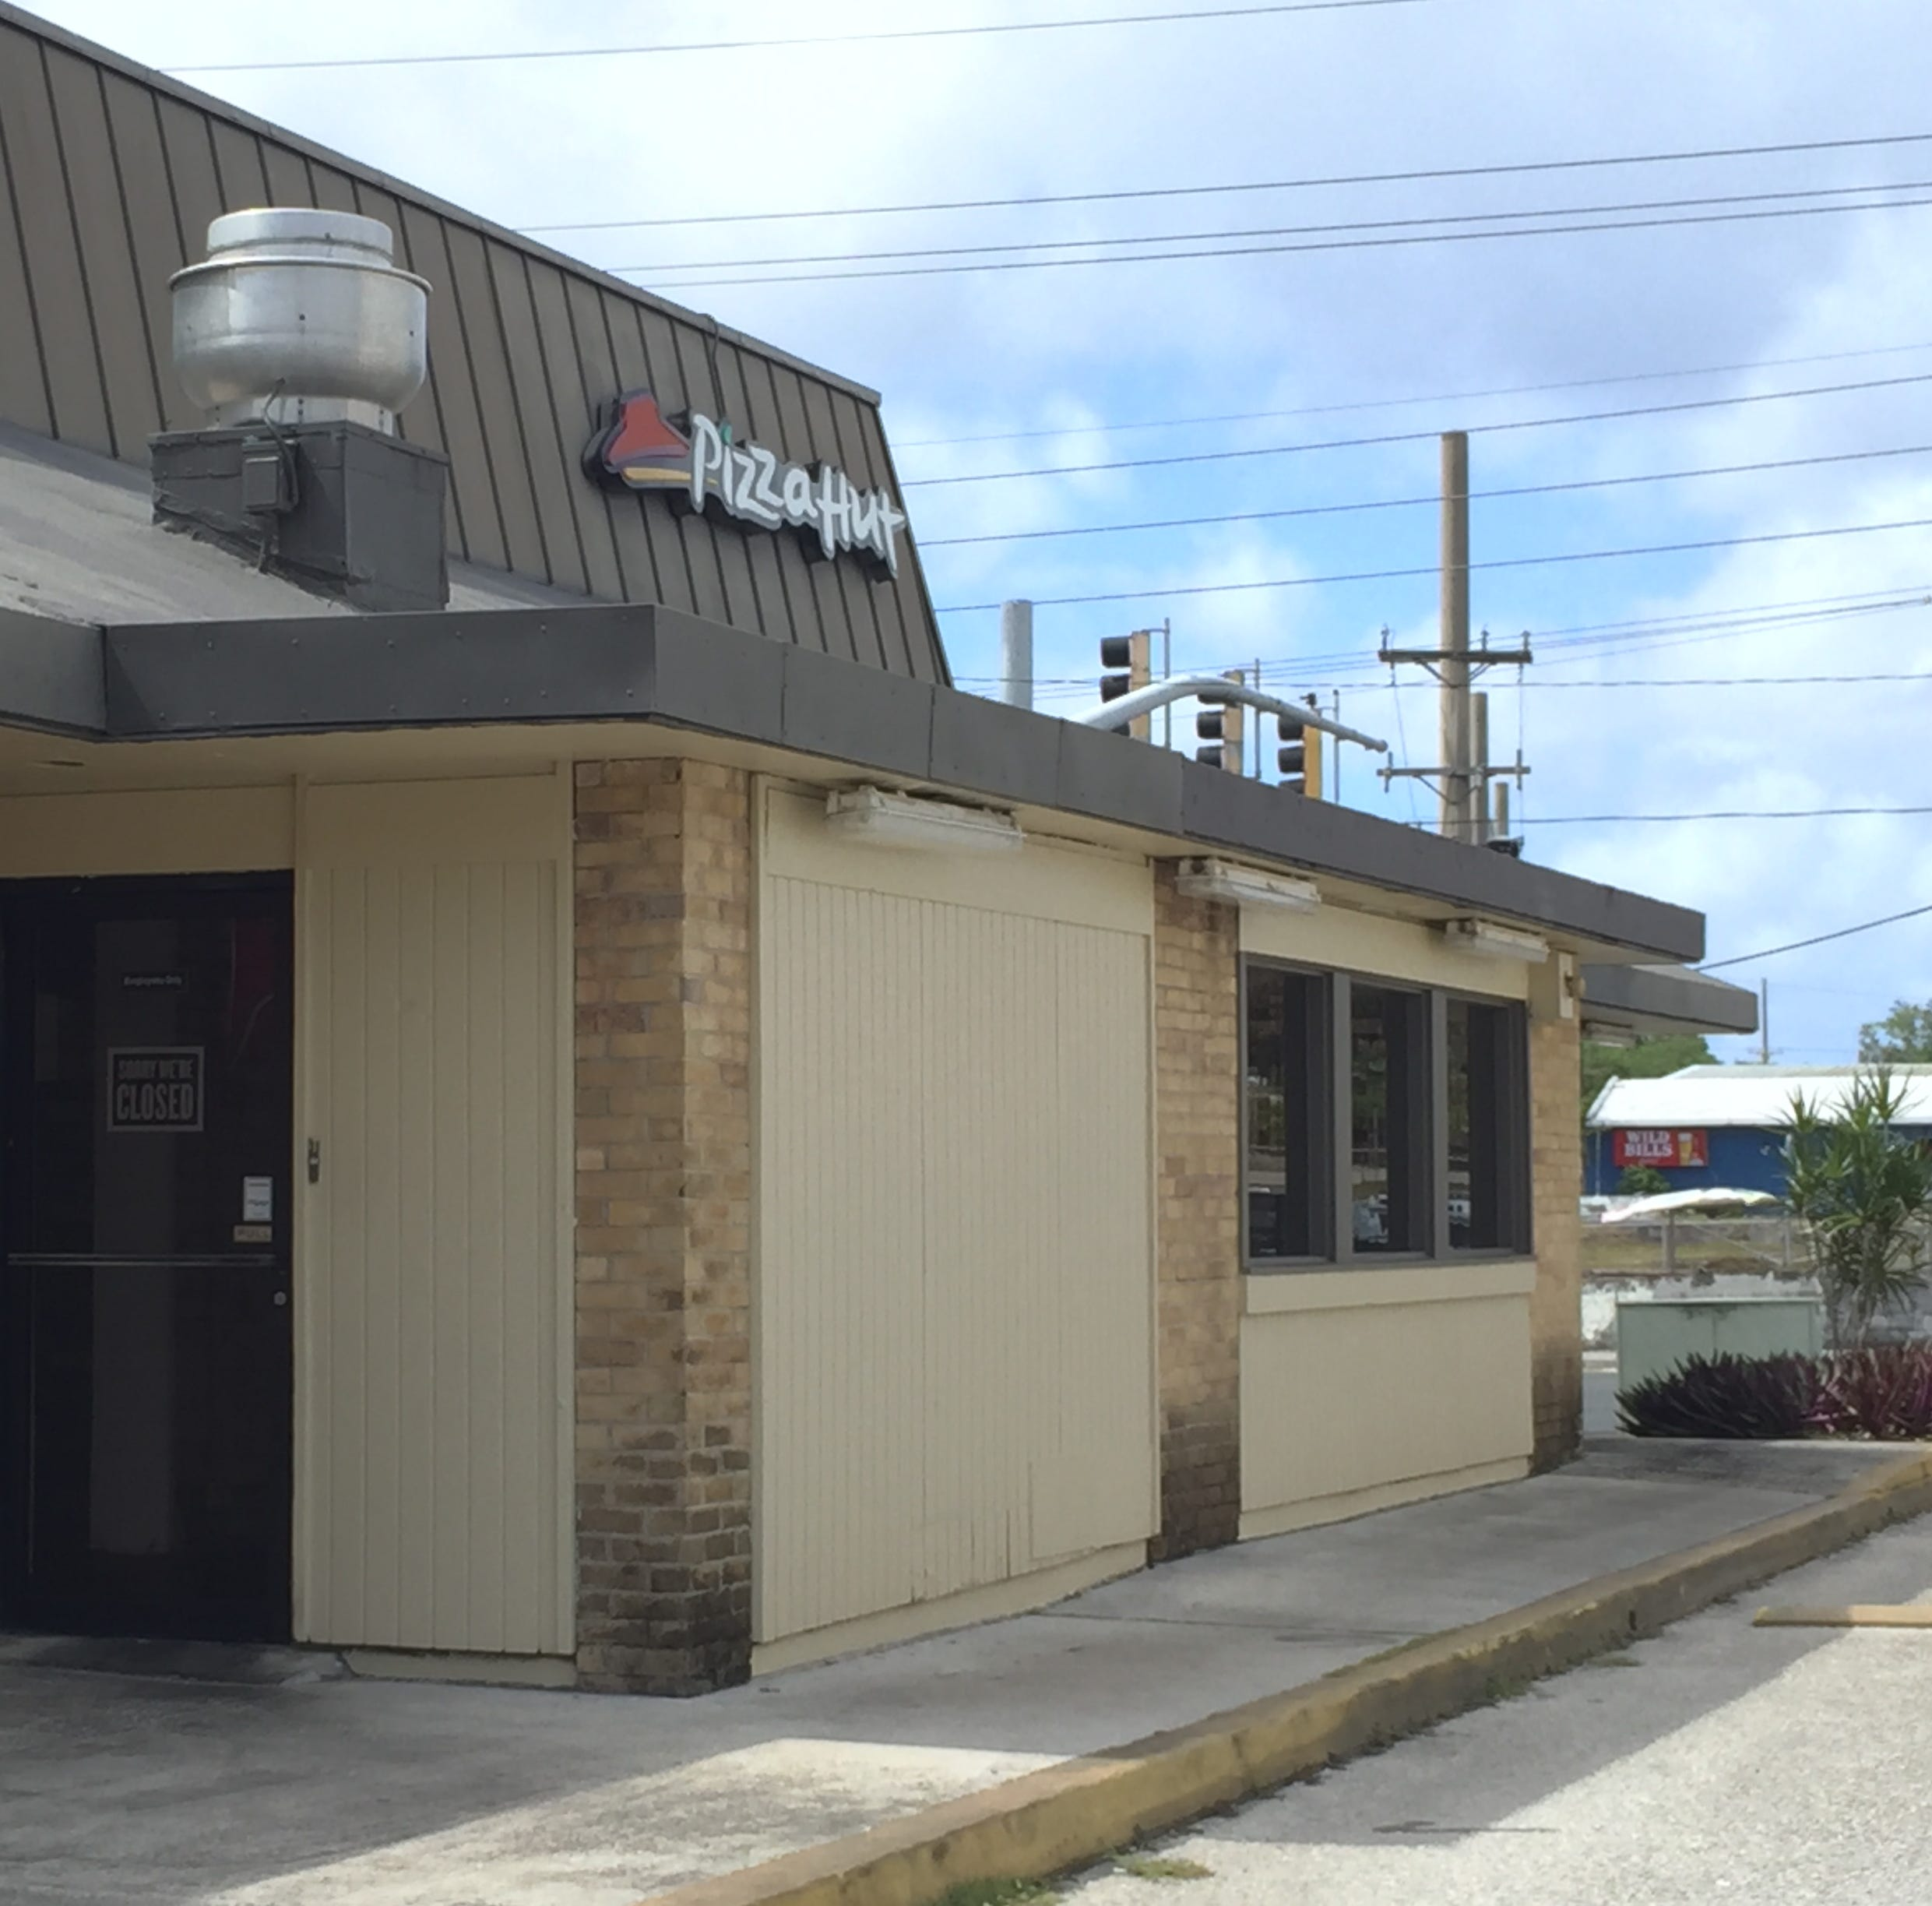 Pizza Hut Tamuning closes for good